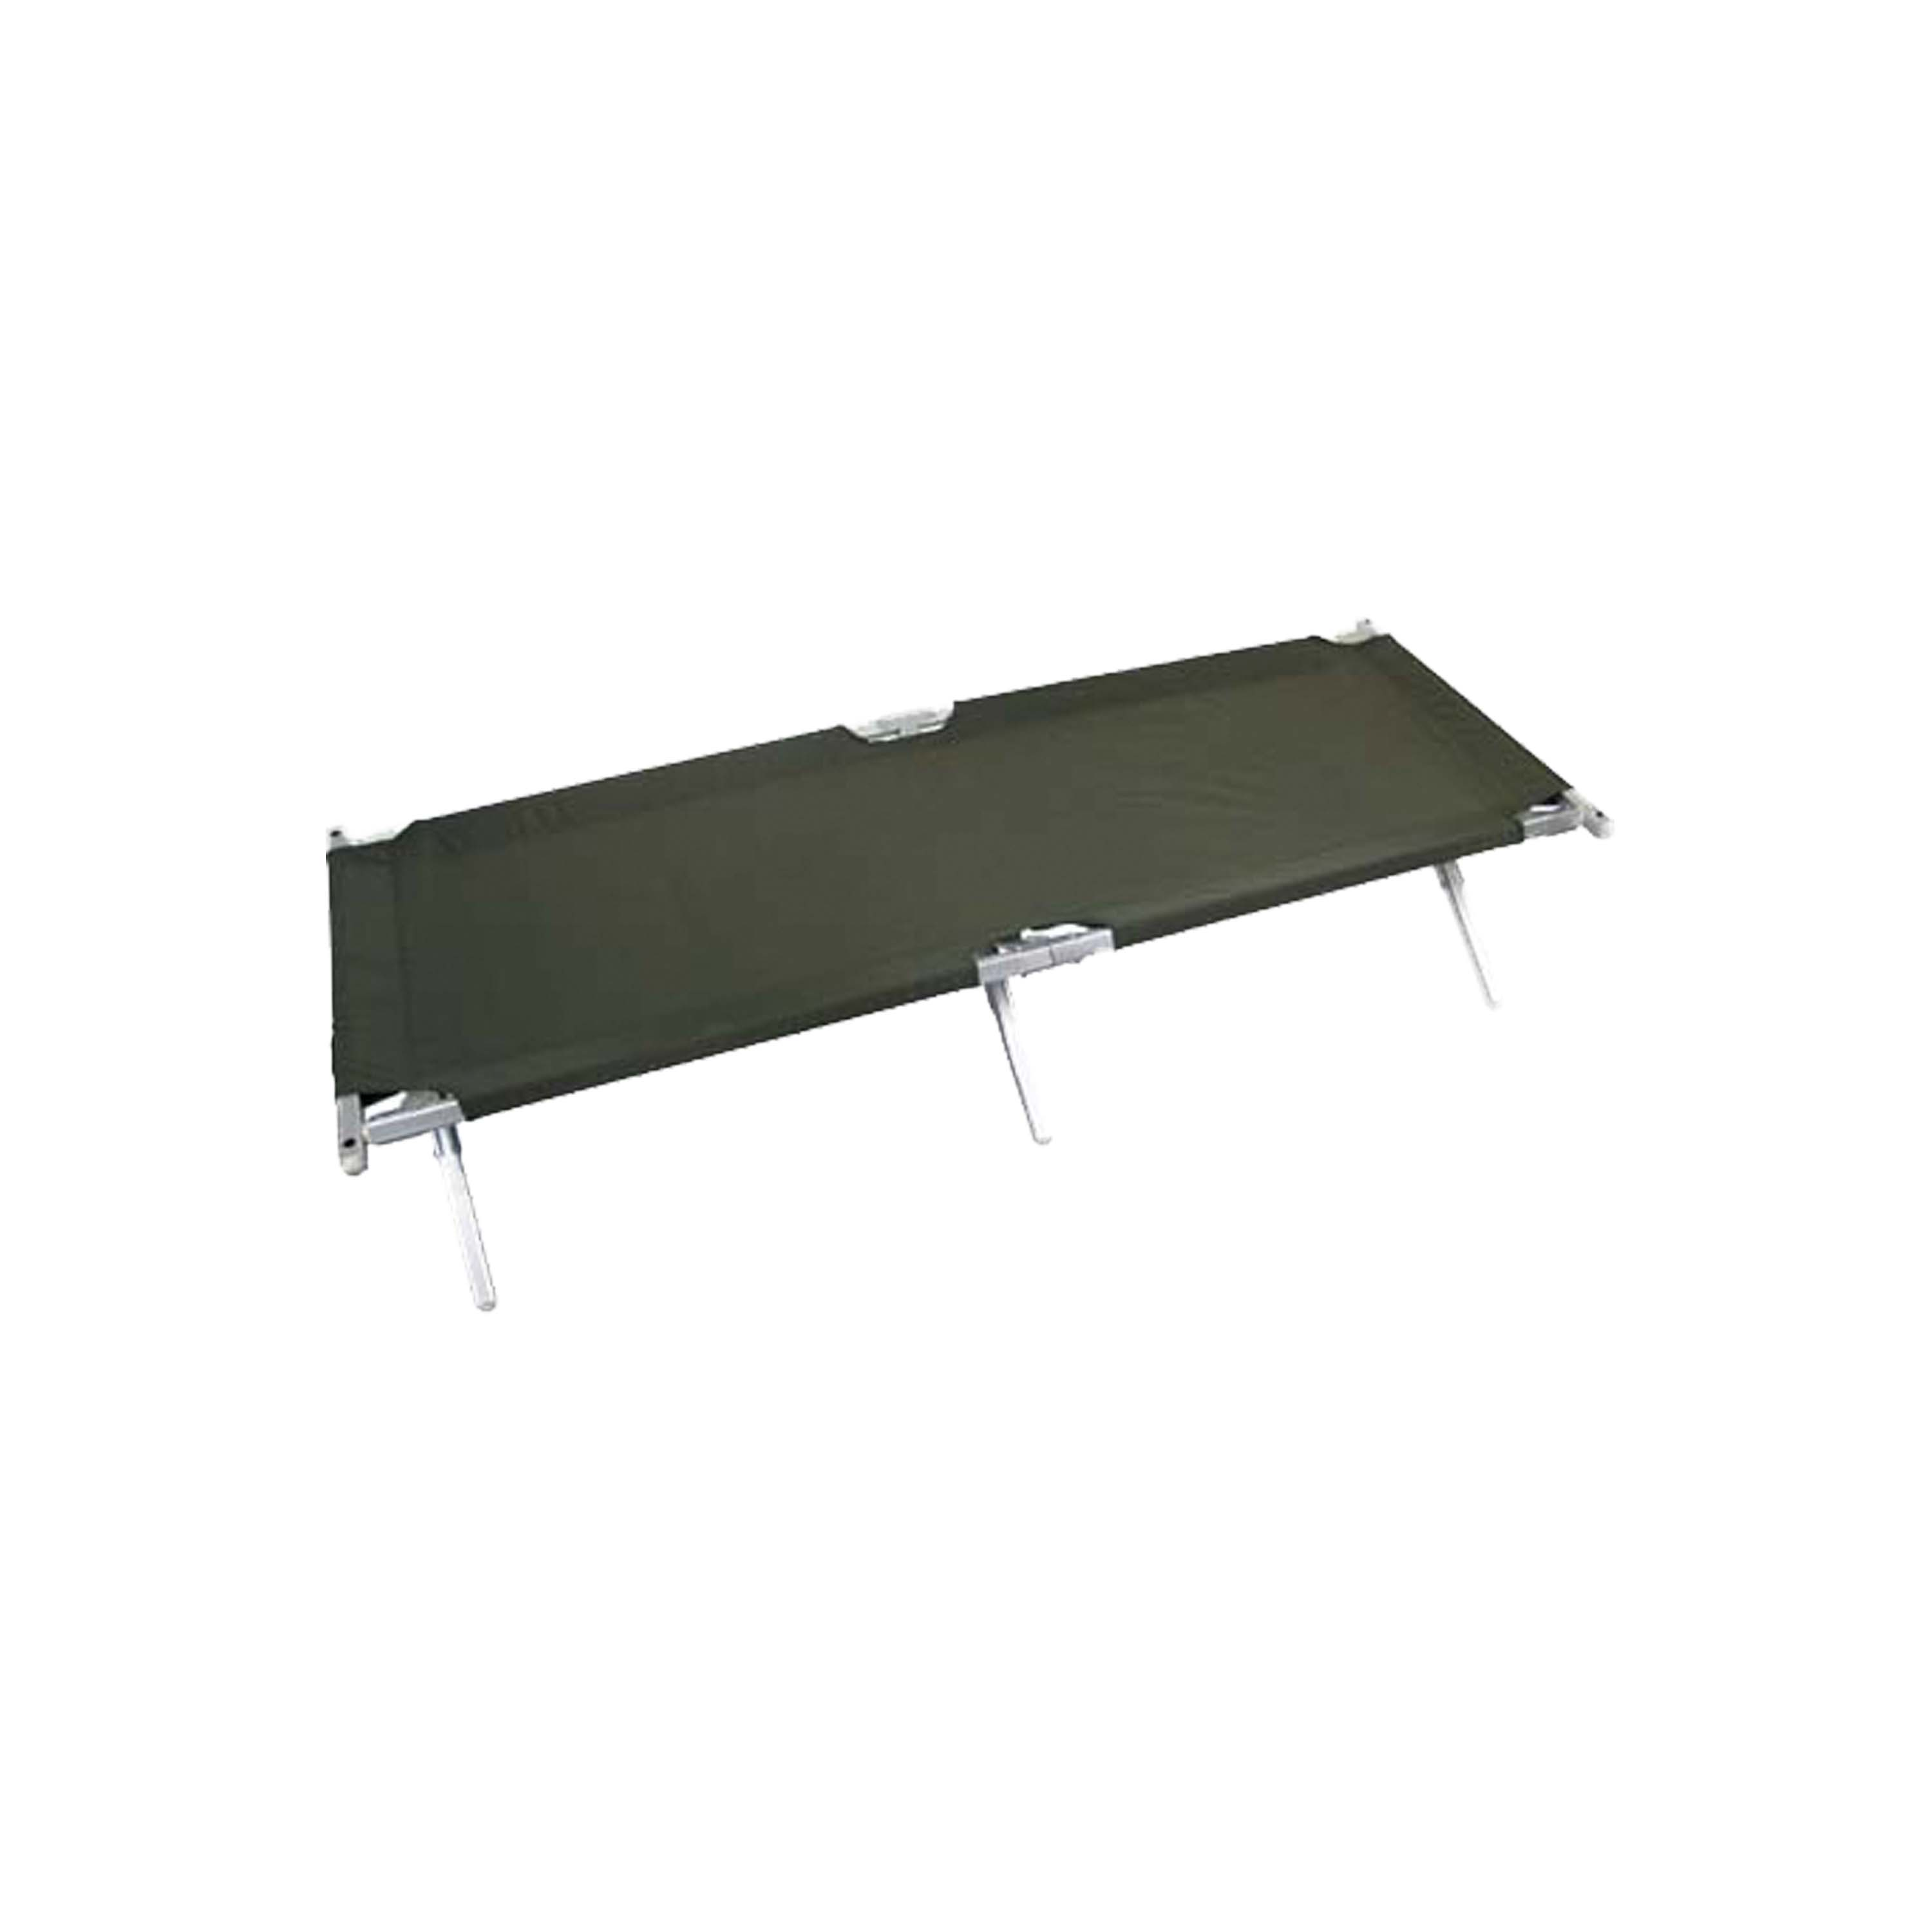 U.S. Field Bed Alu with New Cover olive